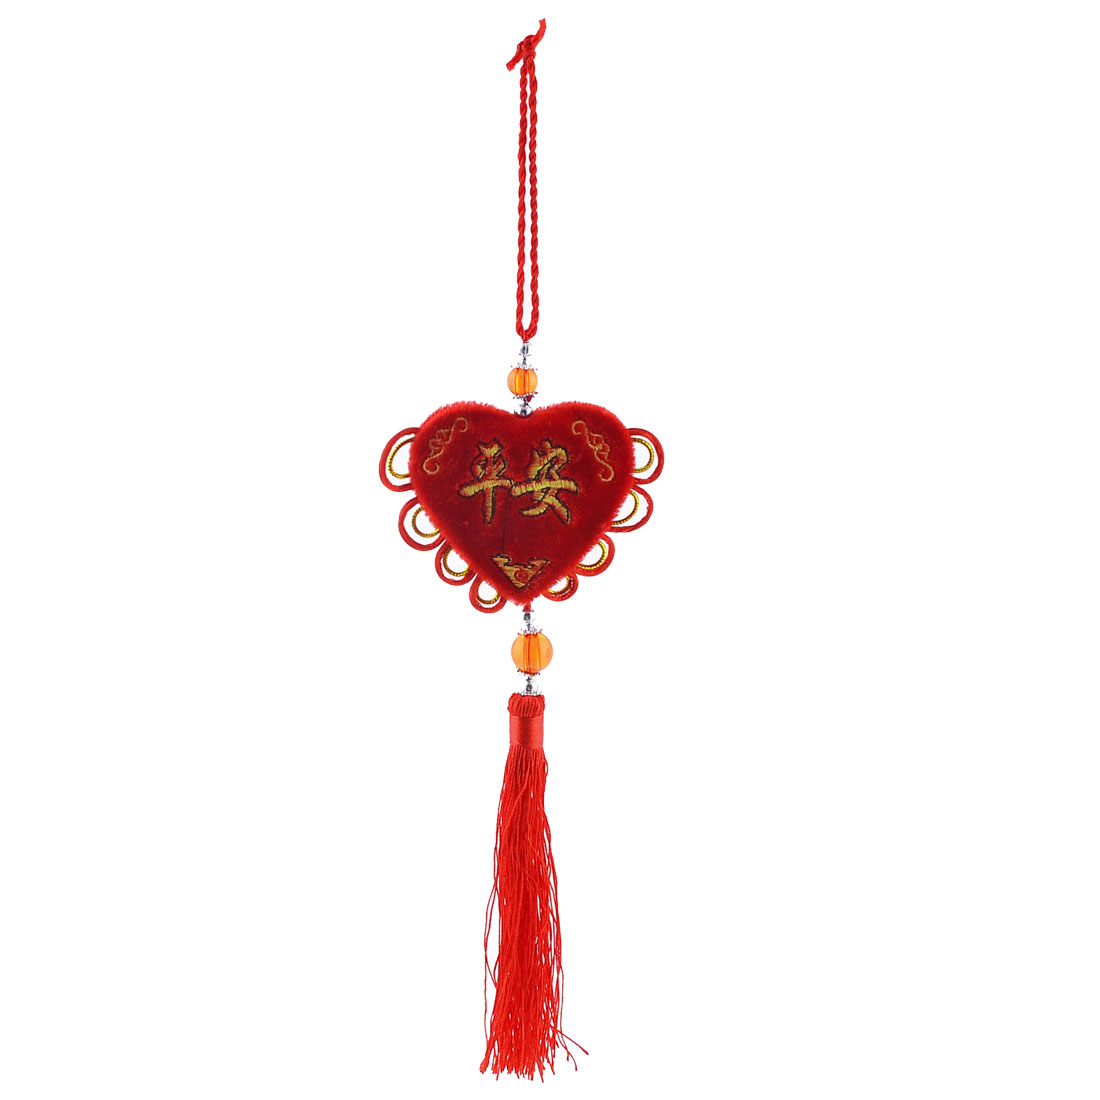 Chinese Knot Fringed Handcraft Red Heart Shape Pendant Ornament